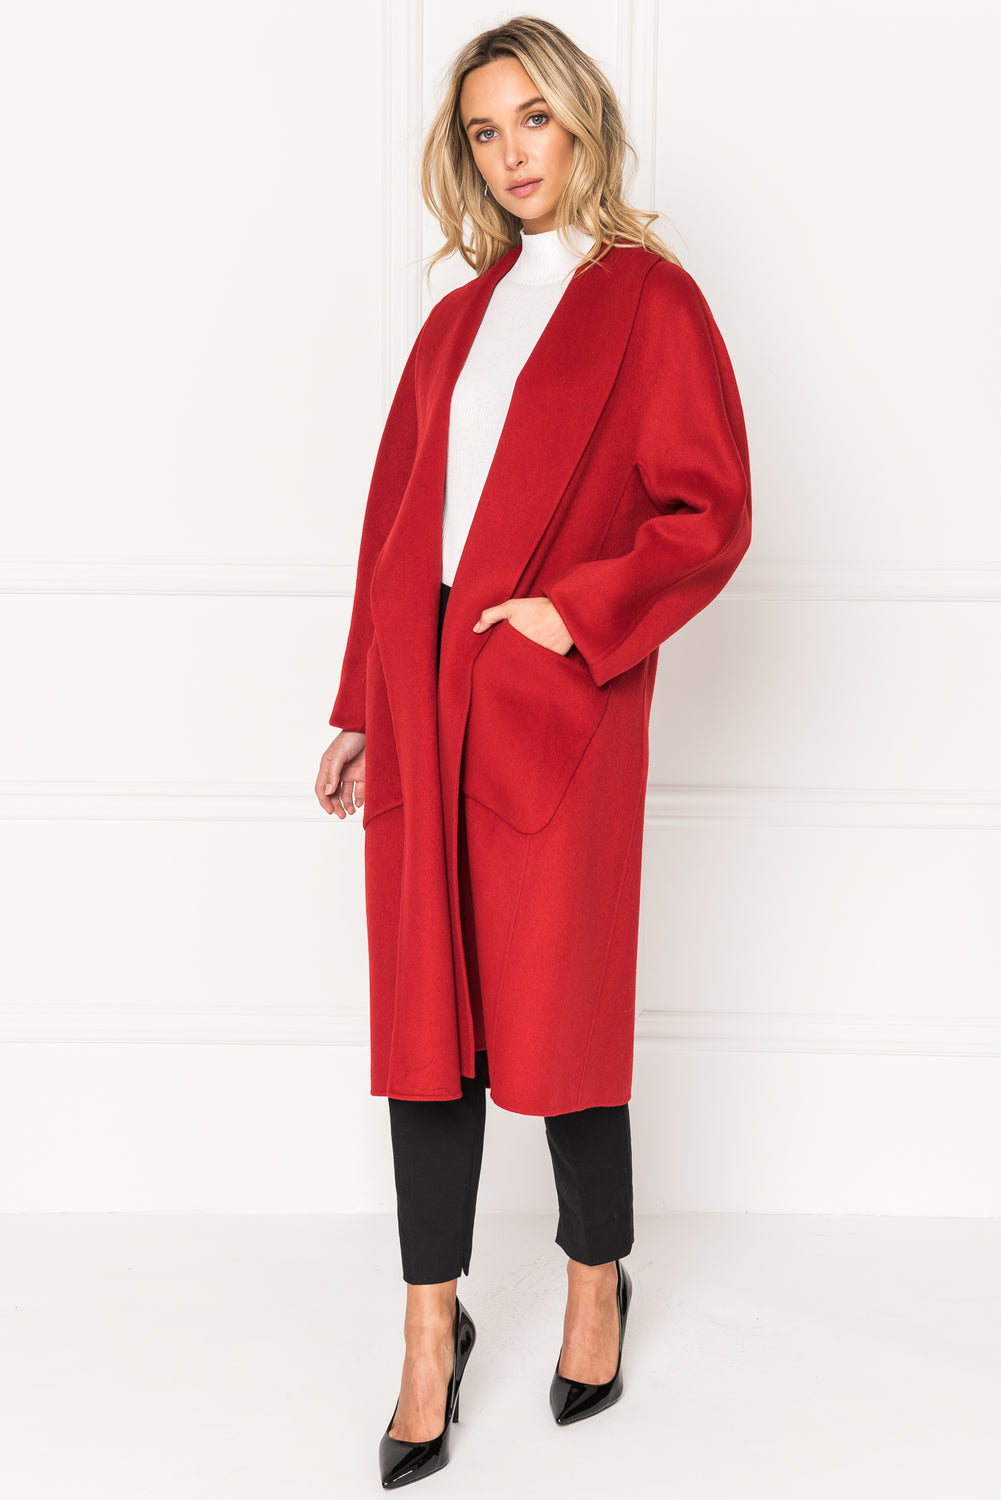 THARA Red Shawl Collar Wool Coat